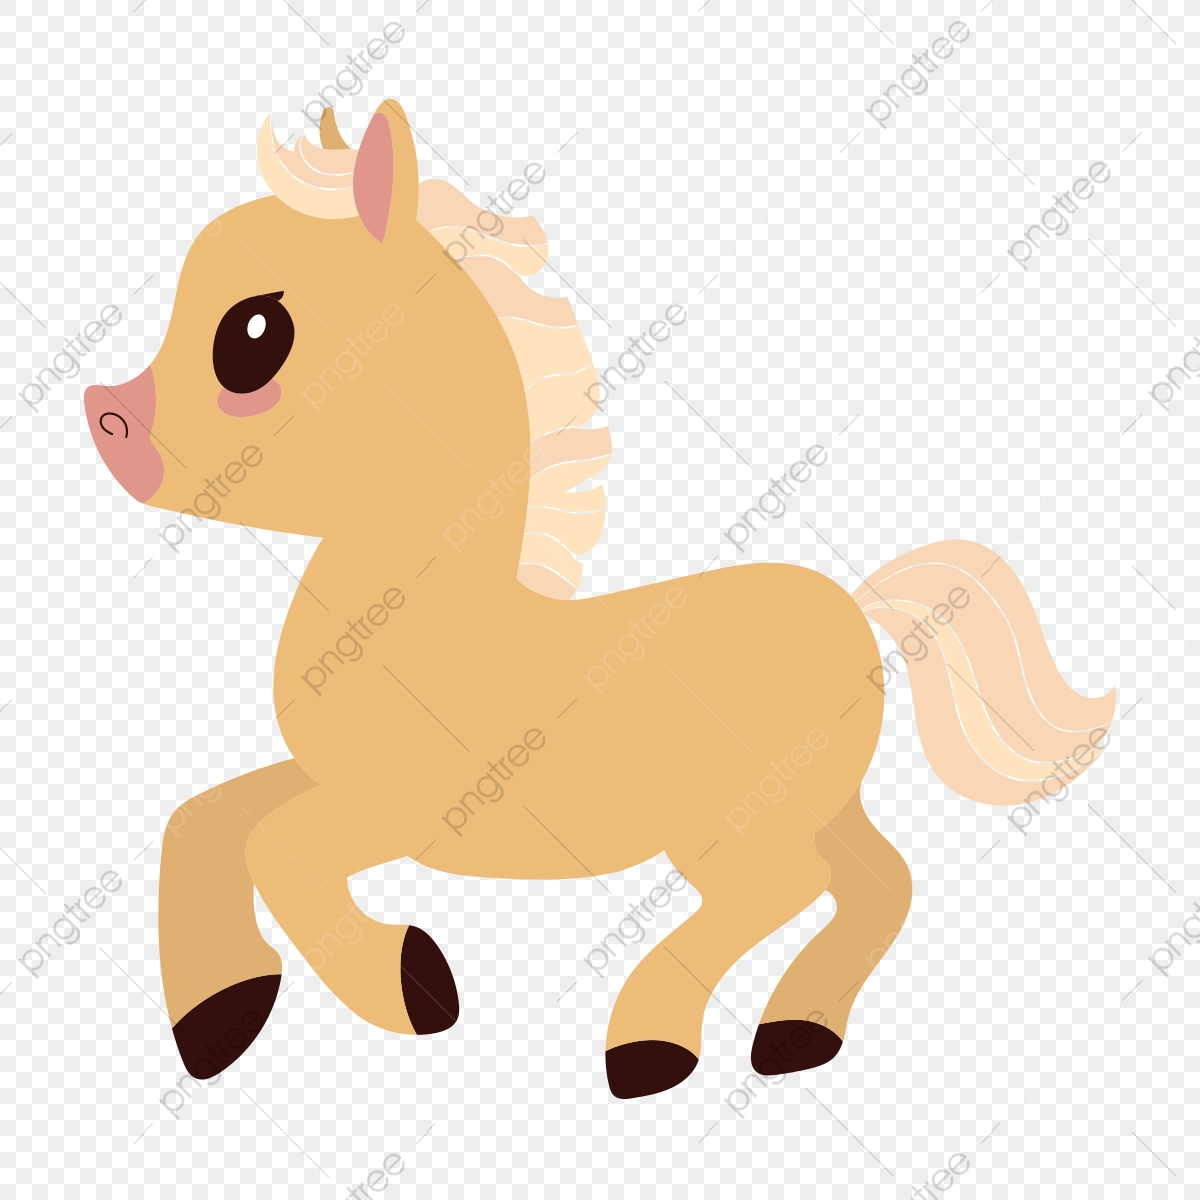 Horse Illustration In A Cute Cartoon Style Horse Clipart Cute Horse Horse Illustration Png And Vector With Transparent Background For Free Download